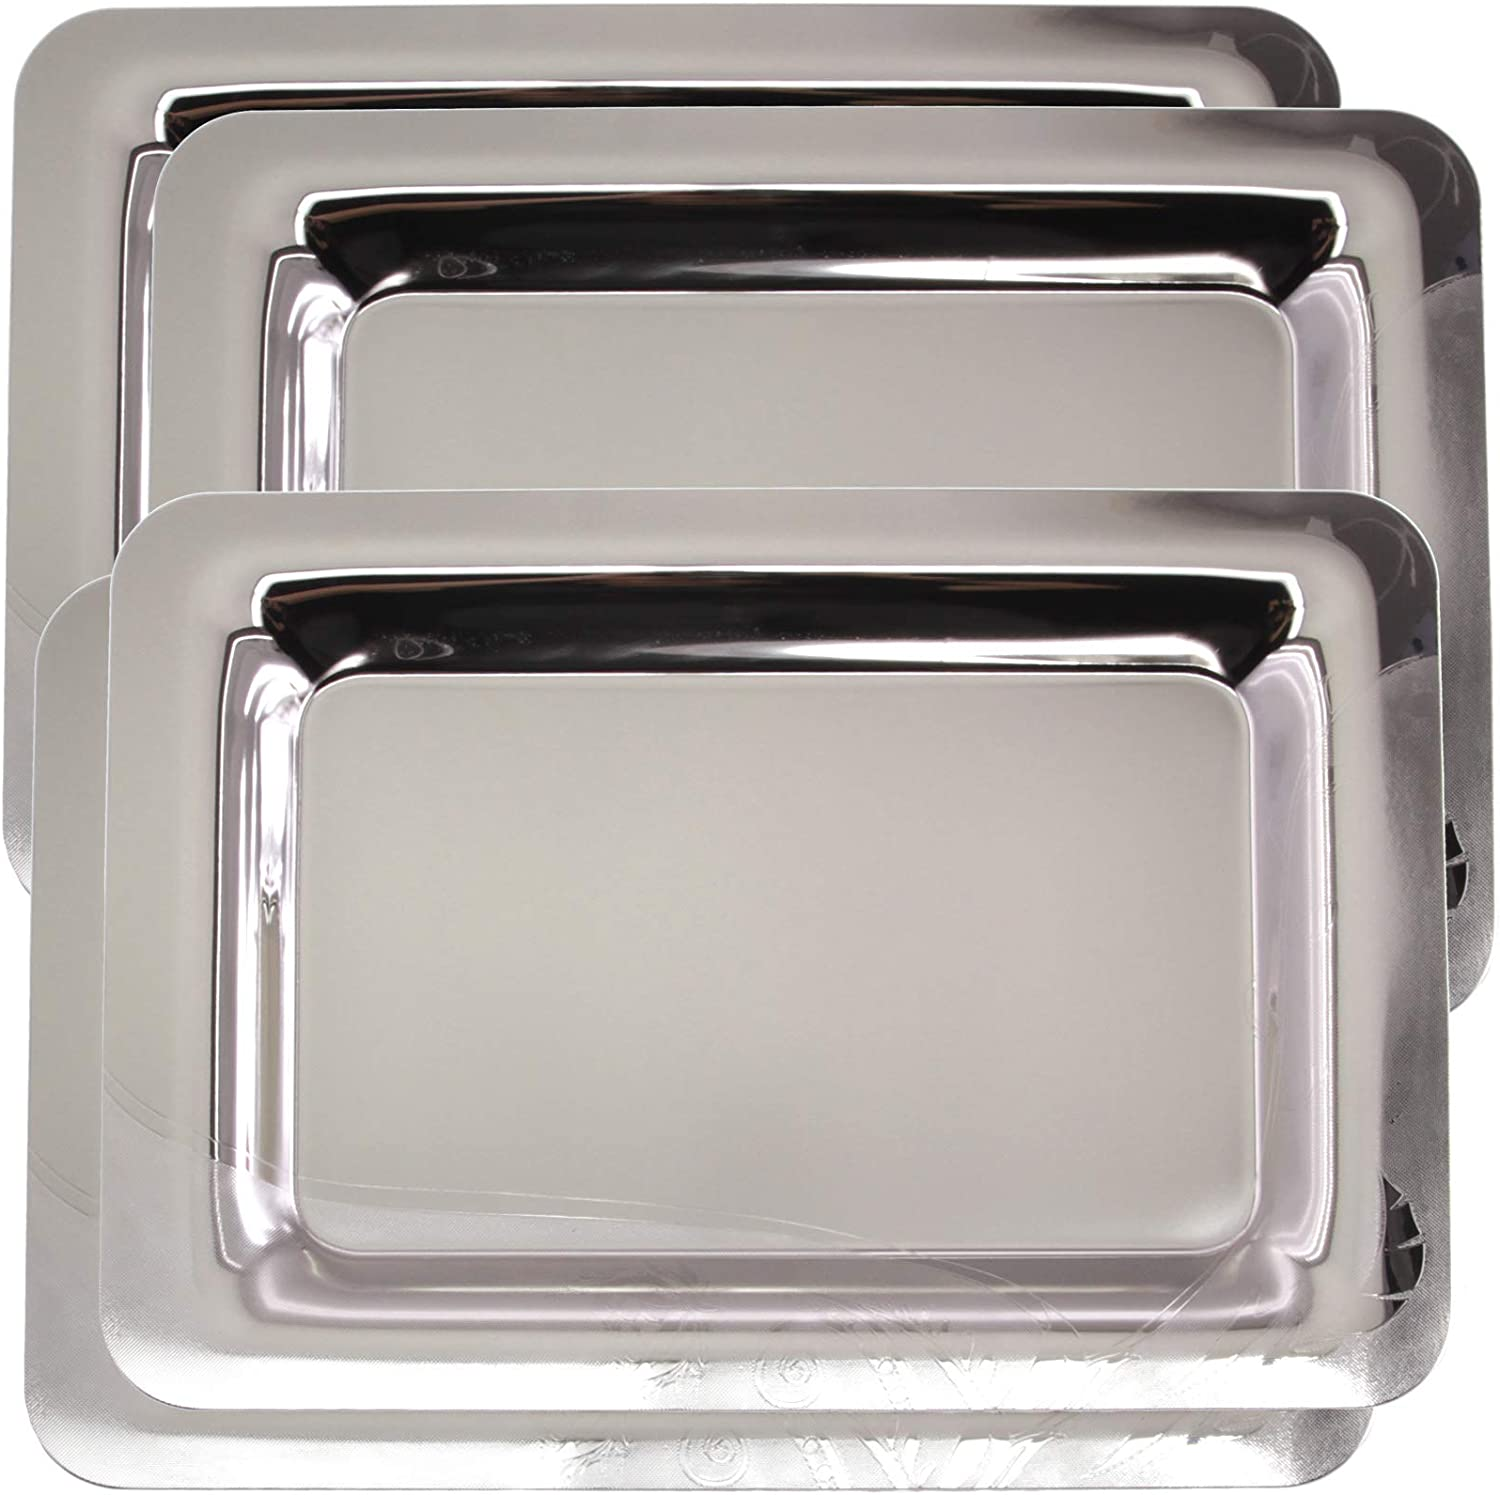 Maro Megastore (Pack of 4) 18.6 inch x 13 inch Oblong Chrome Plated Mirror Silver Serving Tray Stylish Design Floral Engraved Edge Decorative Party Birthday Wedding Buffet Wine Platter Plate TLA-339